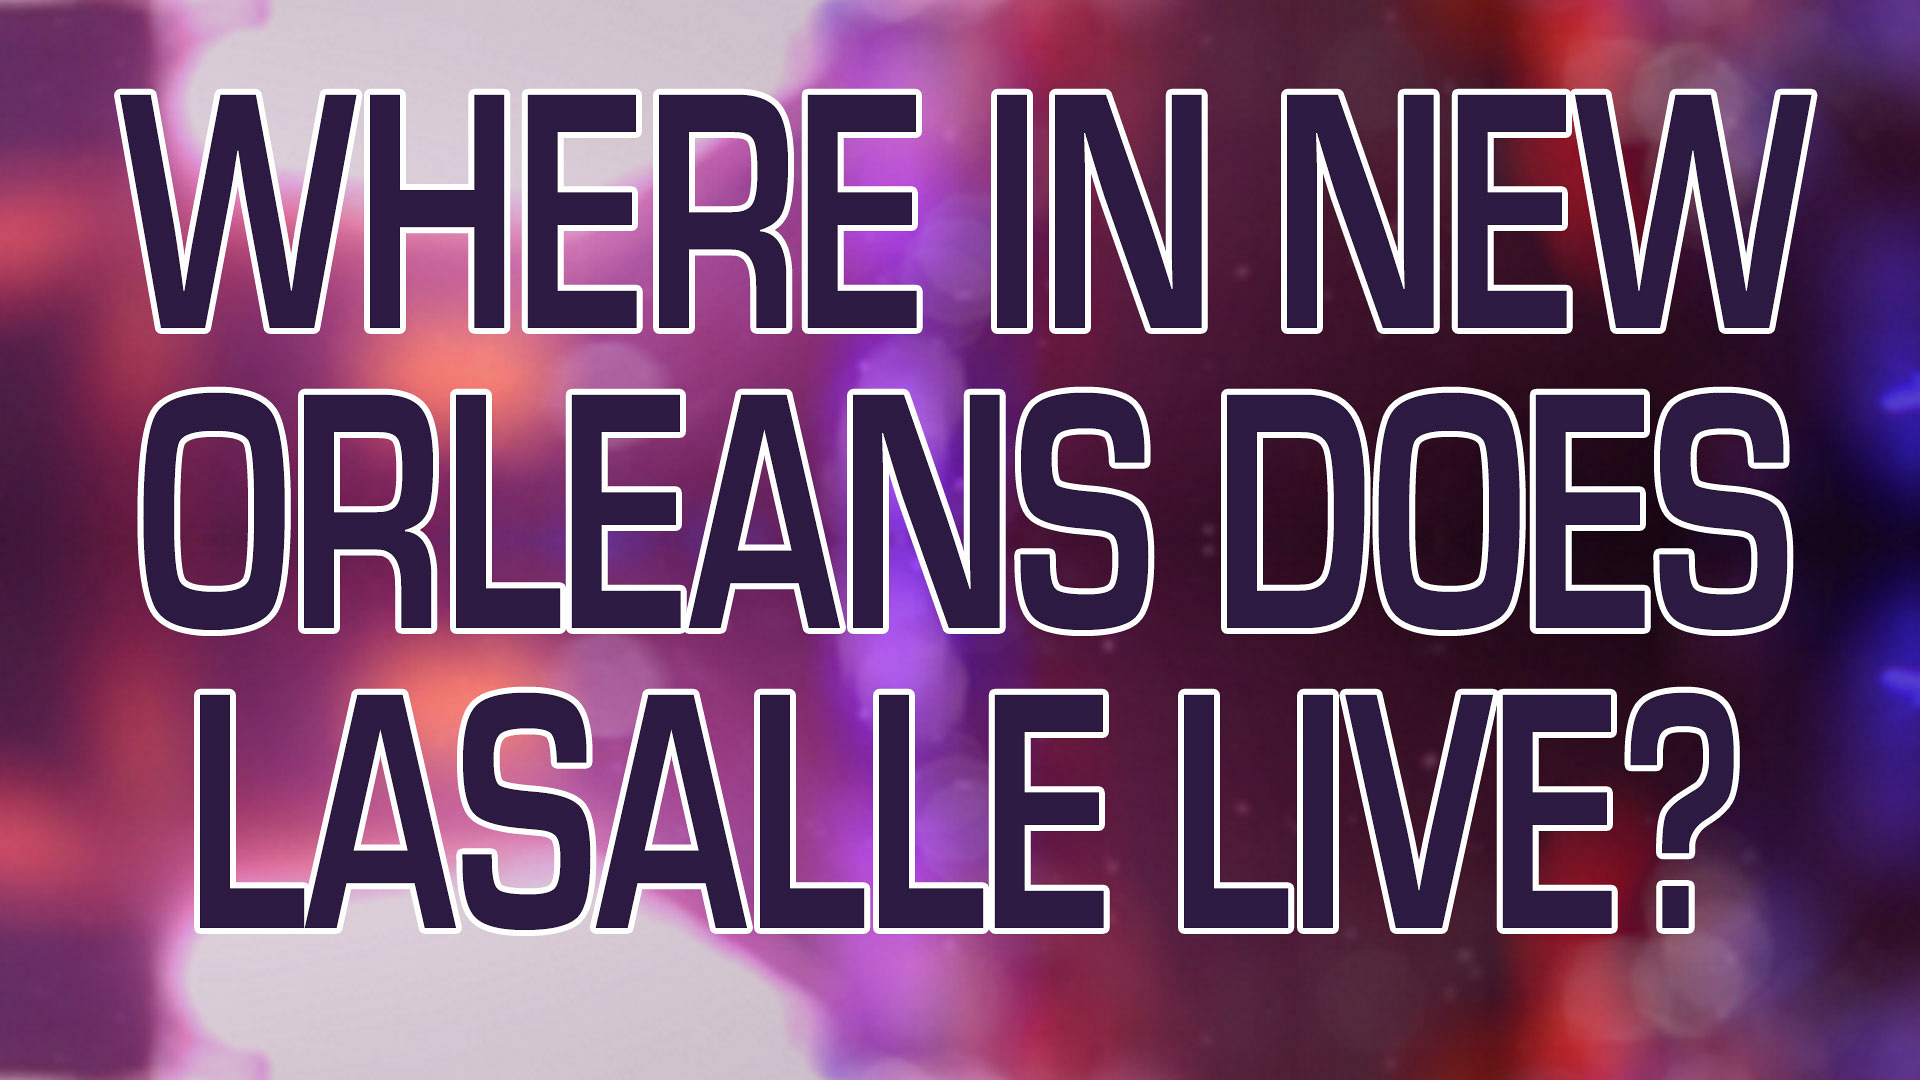 Where in New Orleans does Lasalle live?